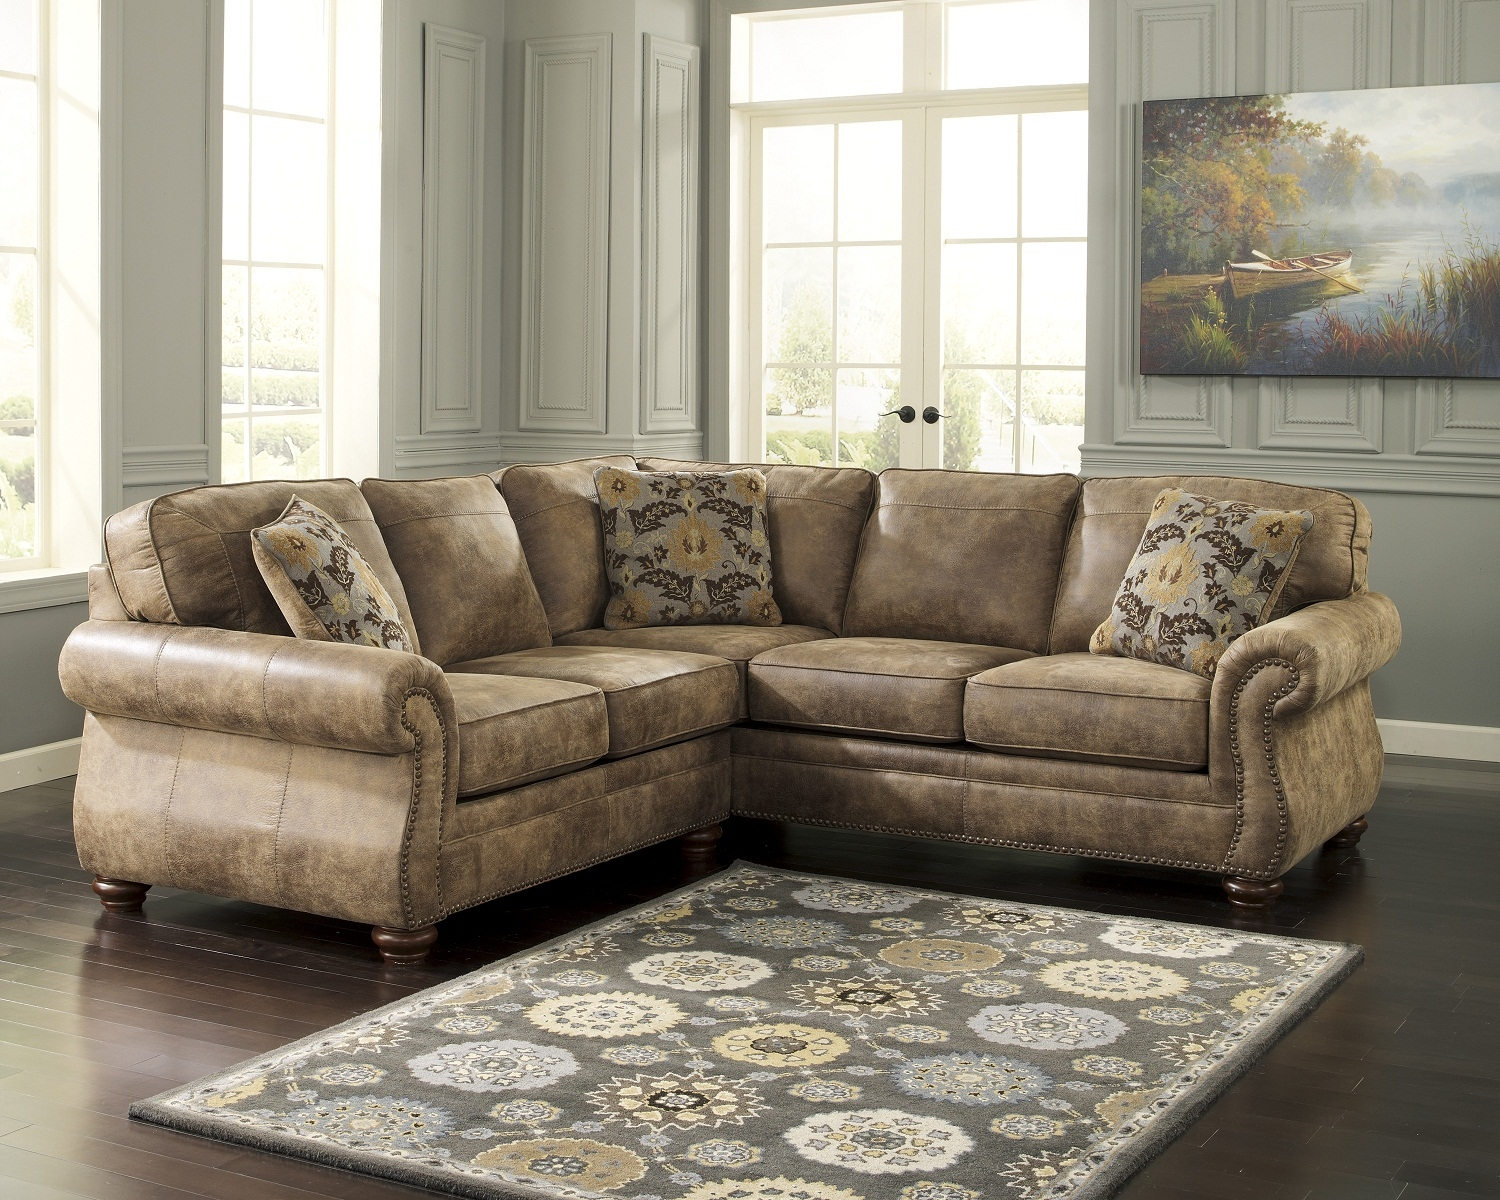 Overstock Sectional Sofas Roselawnlutheran Within Chenille Sectional Sofas (Image 11 of 15)